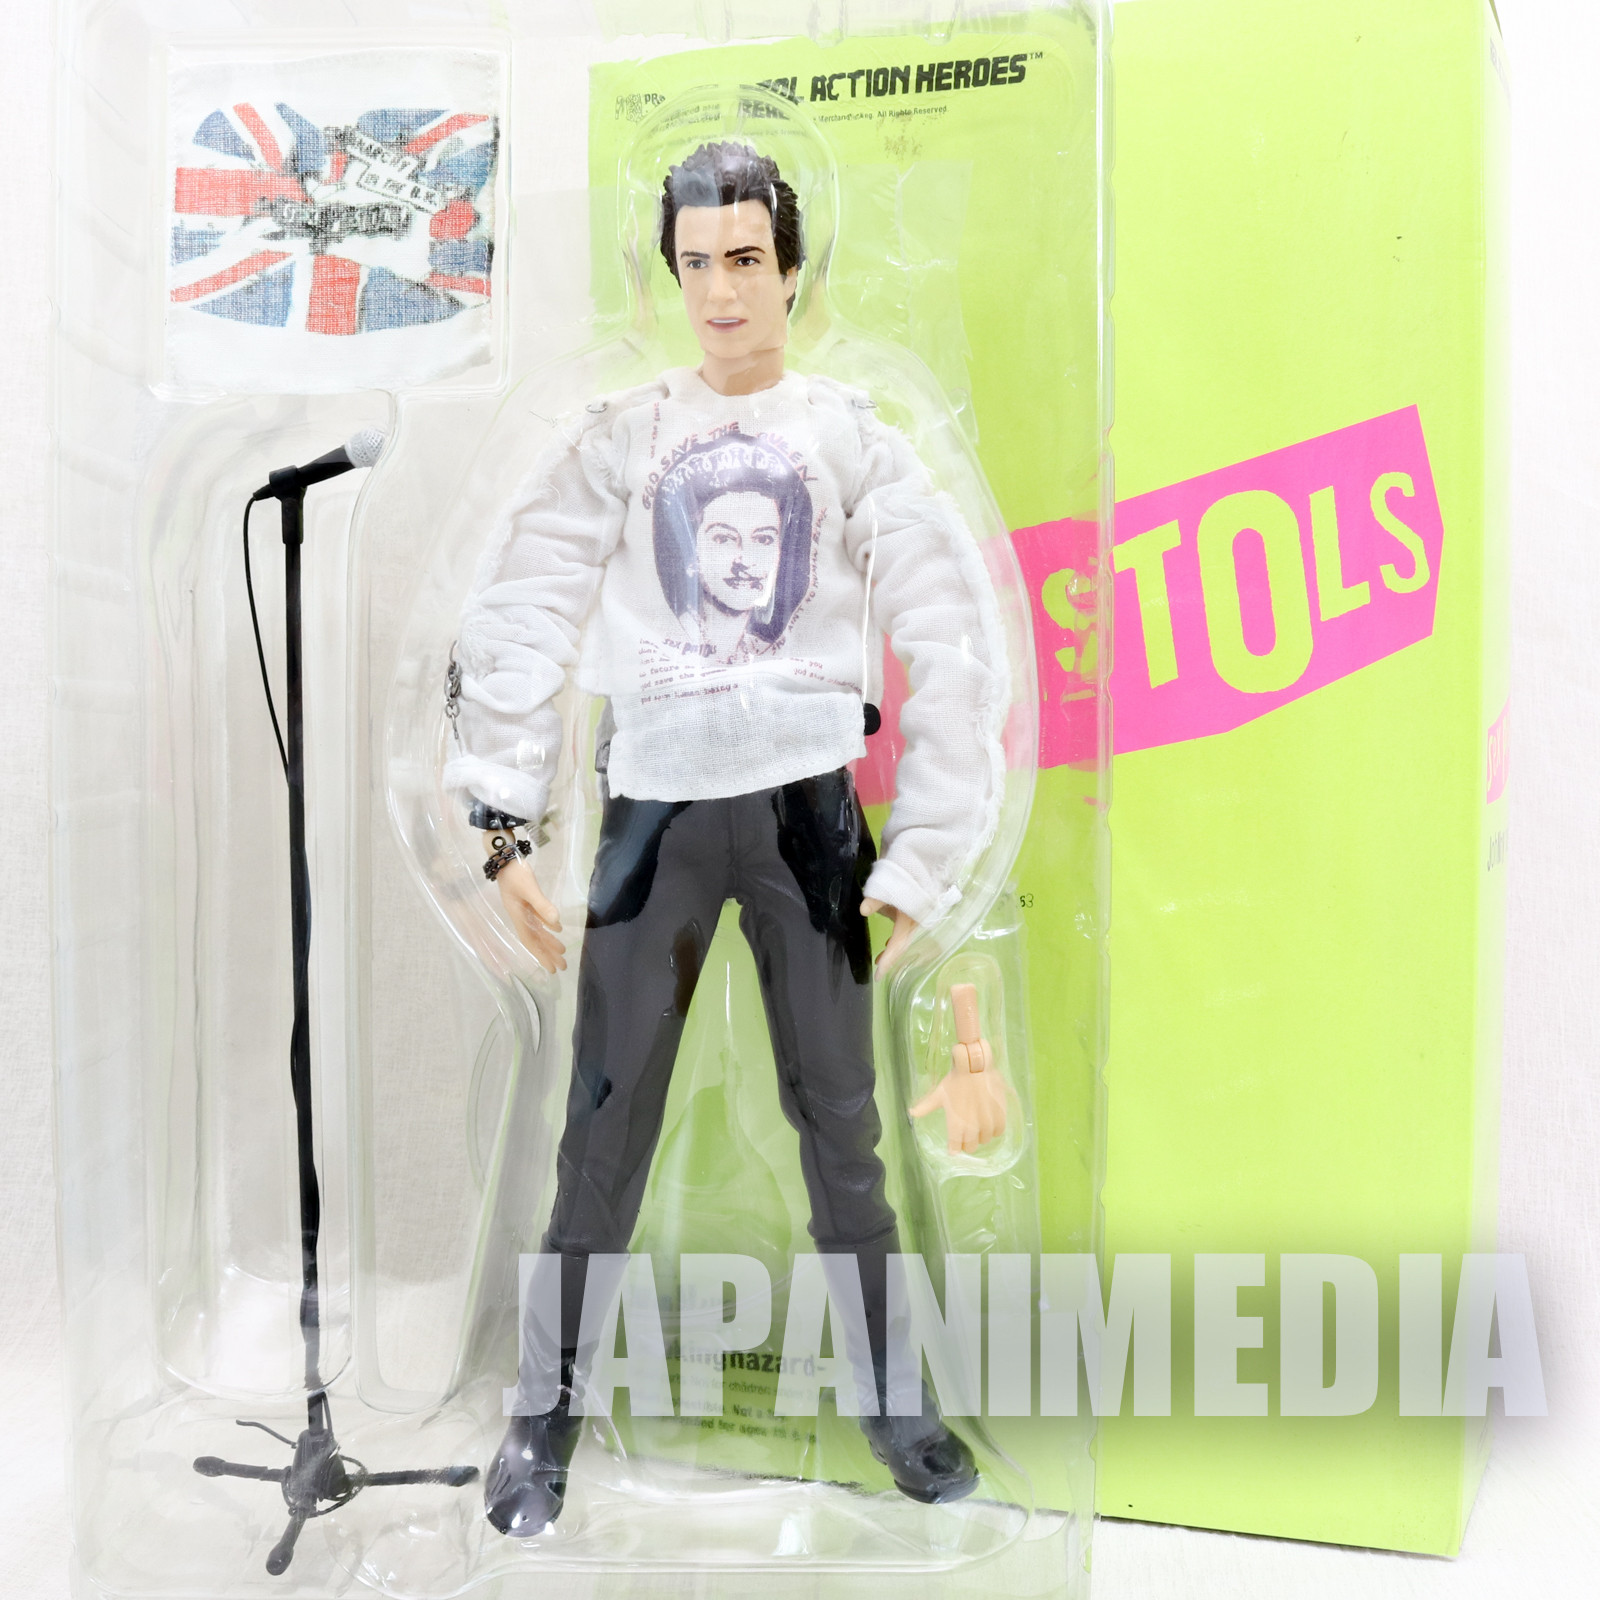 Johnny Rotten Sex Pistols Real Action Heroes RAH Figure Medicom Toy